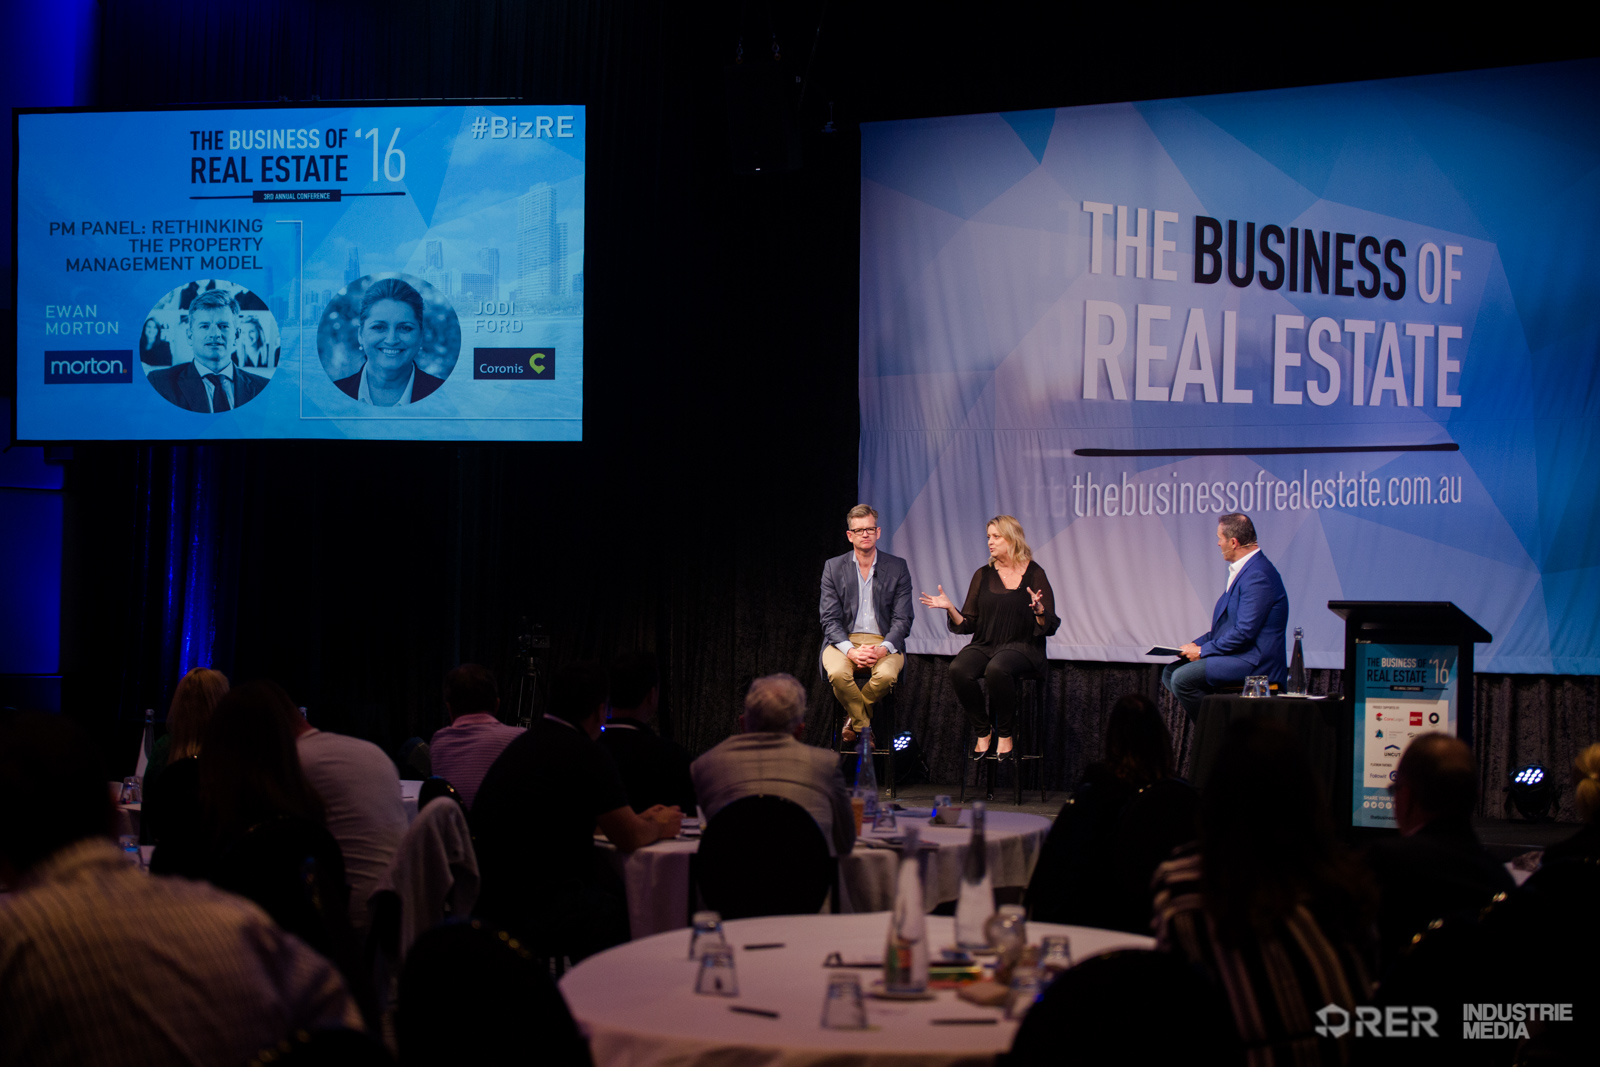 http://www.thebusinessofrealestate.com.au/wp-content/uploads/2016/09/RER_BUSINESS_OF_REAL_ESTATE_DAY_2-82.jpg